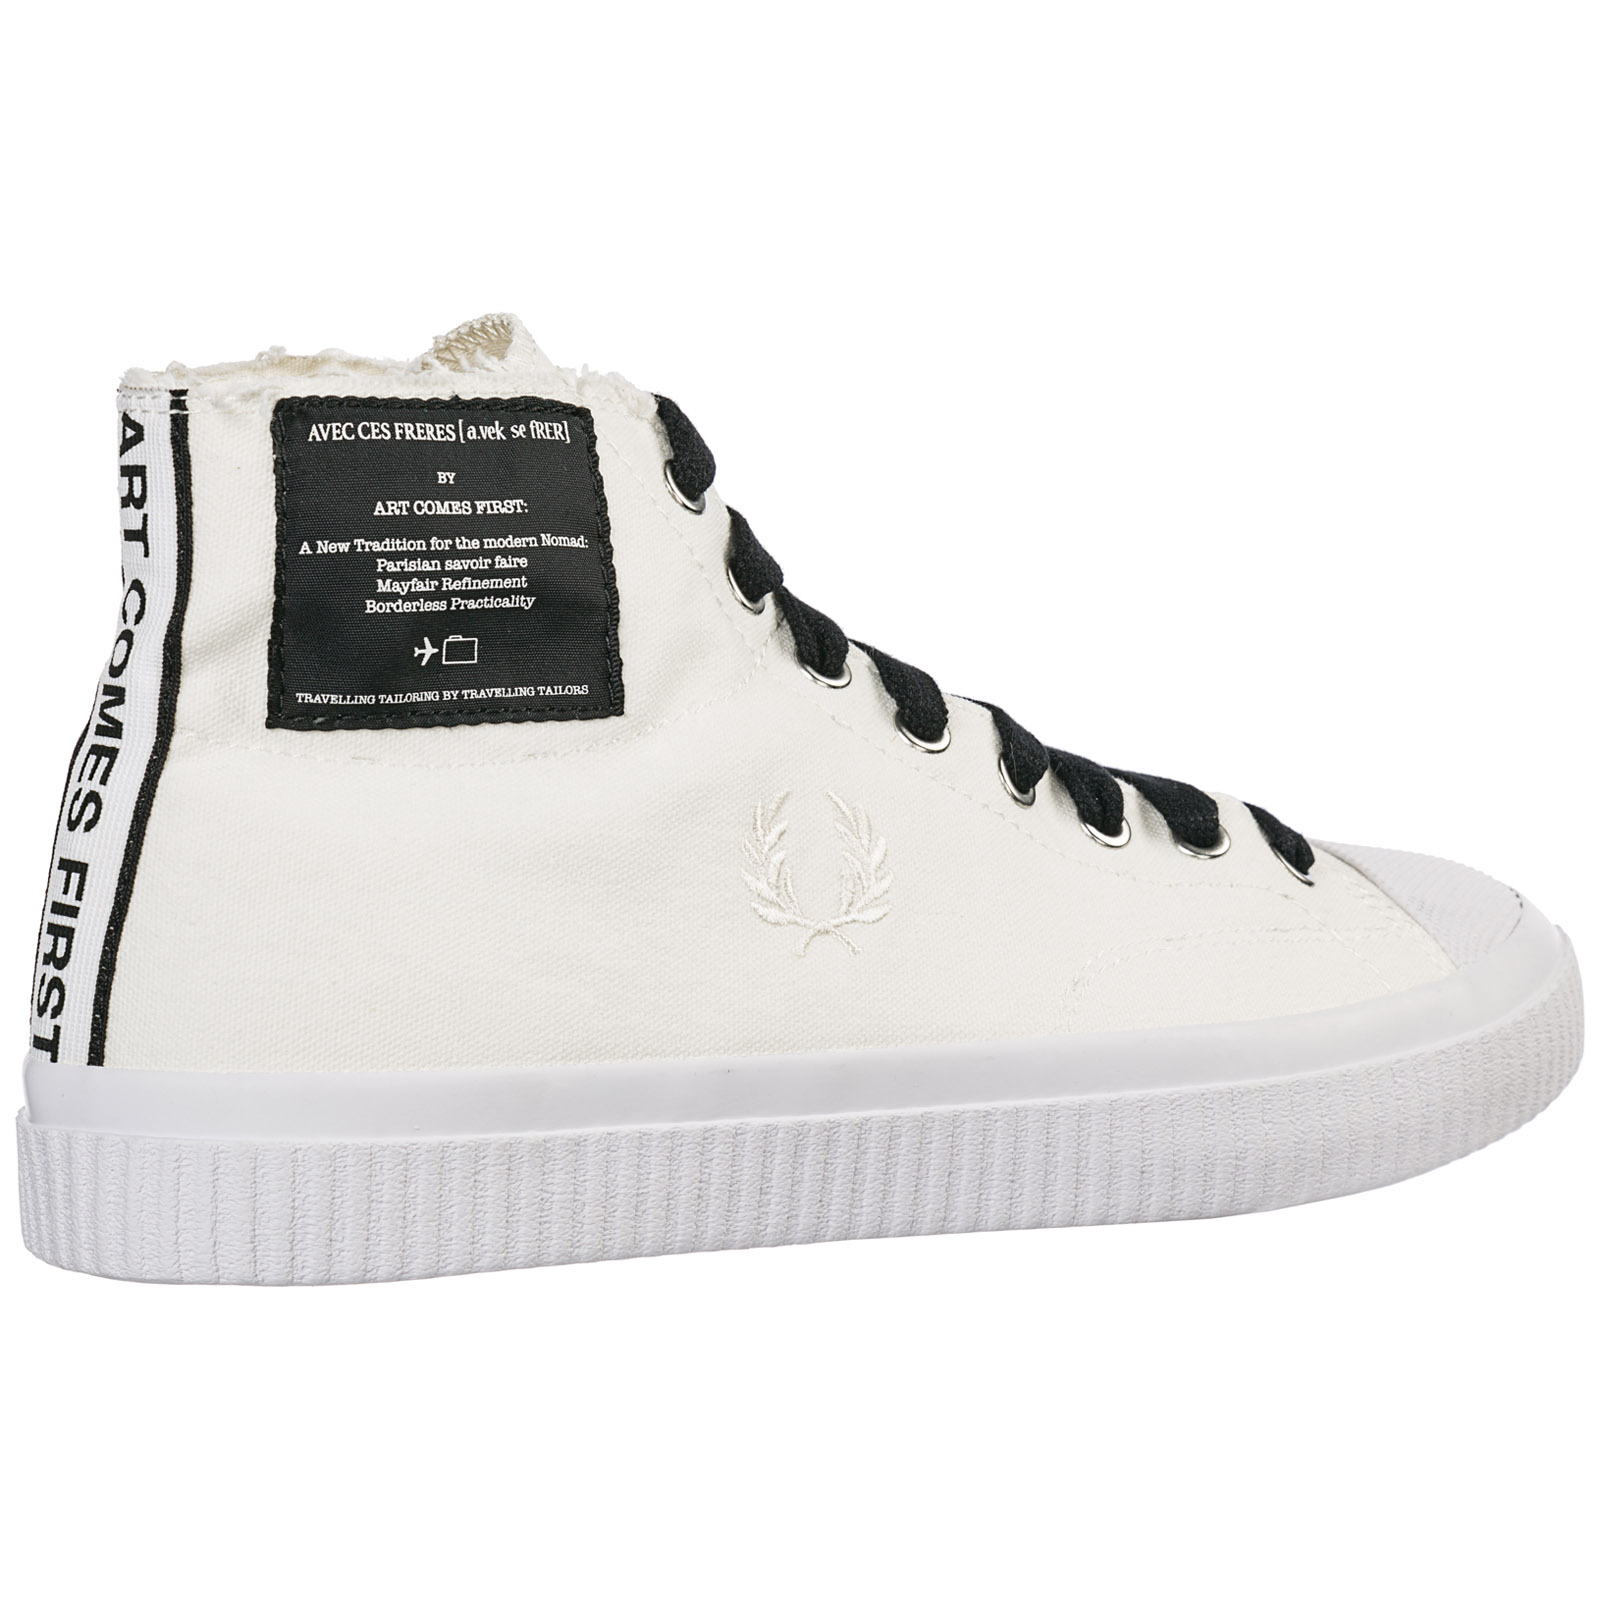 B5266 Fred White Perry Alte Hughes Snow Sneakers gvfy6bY7